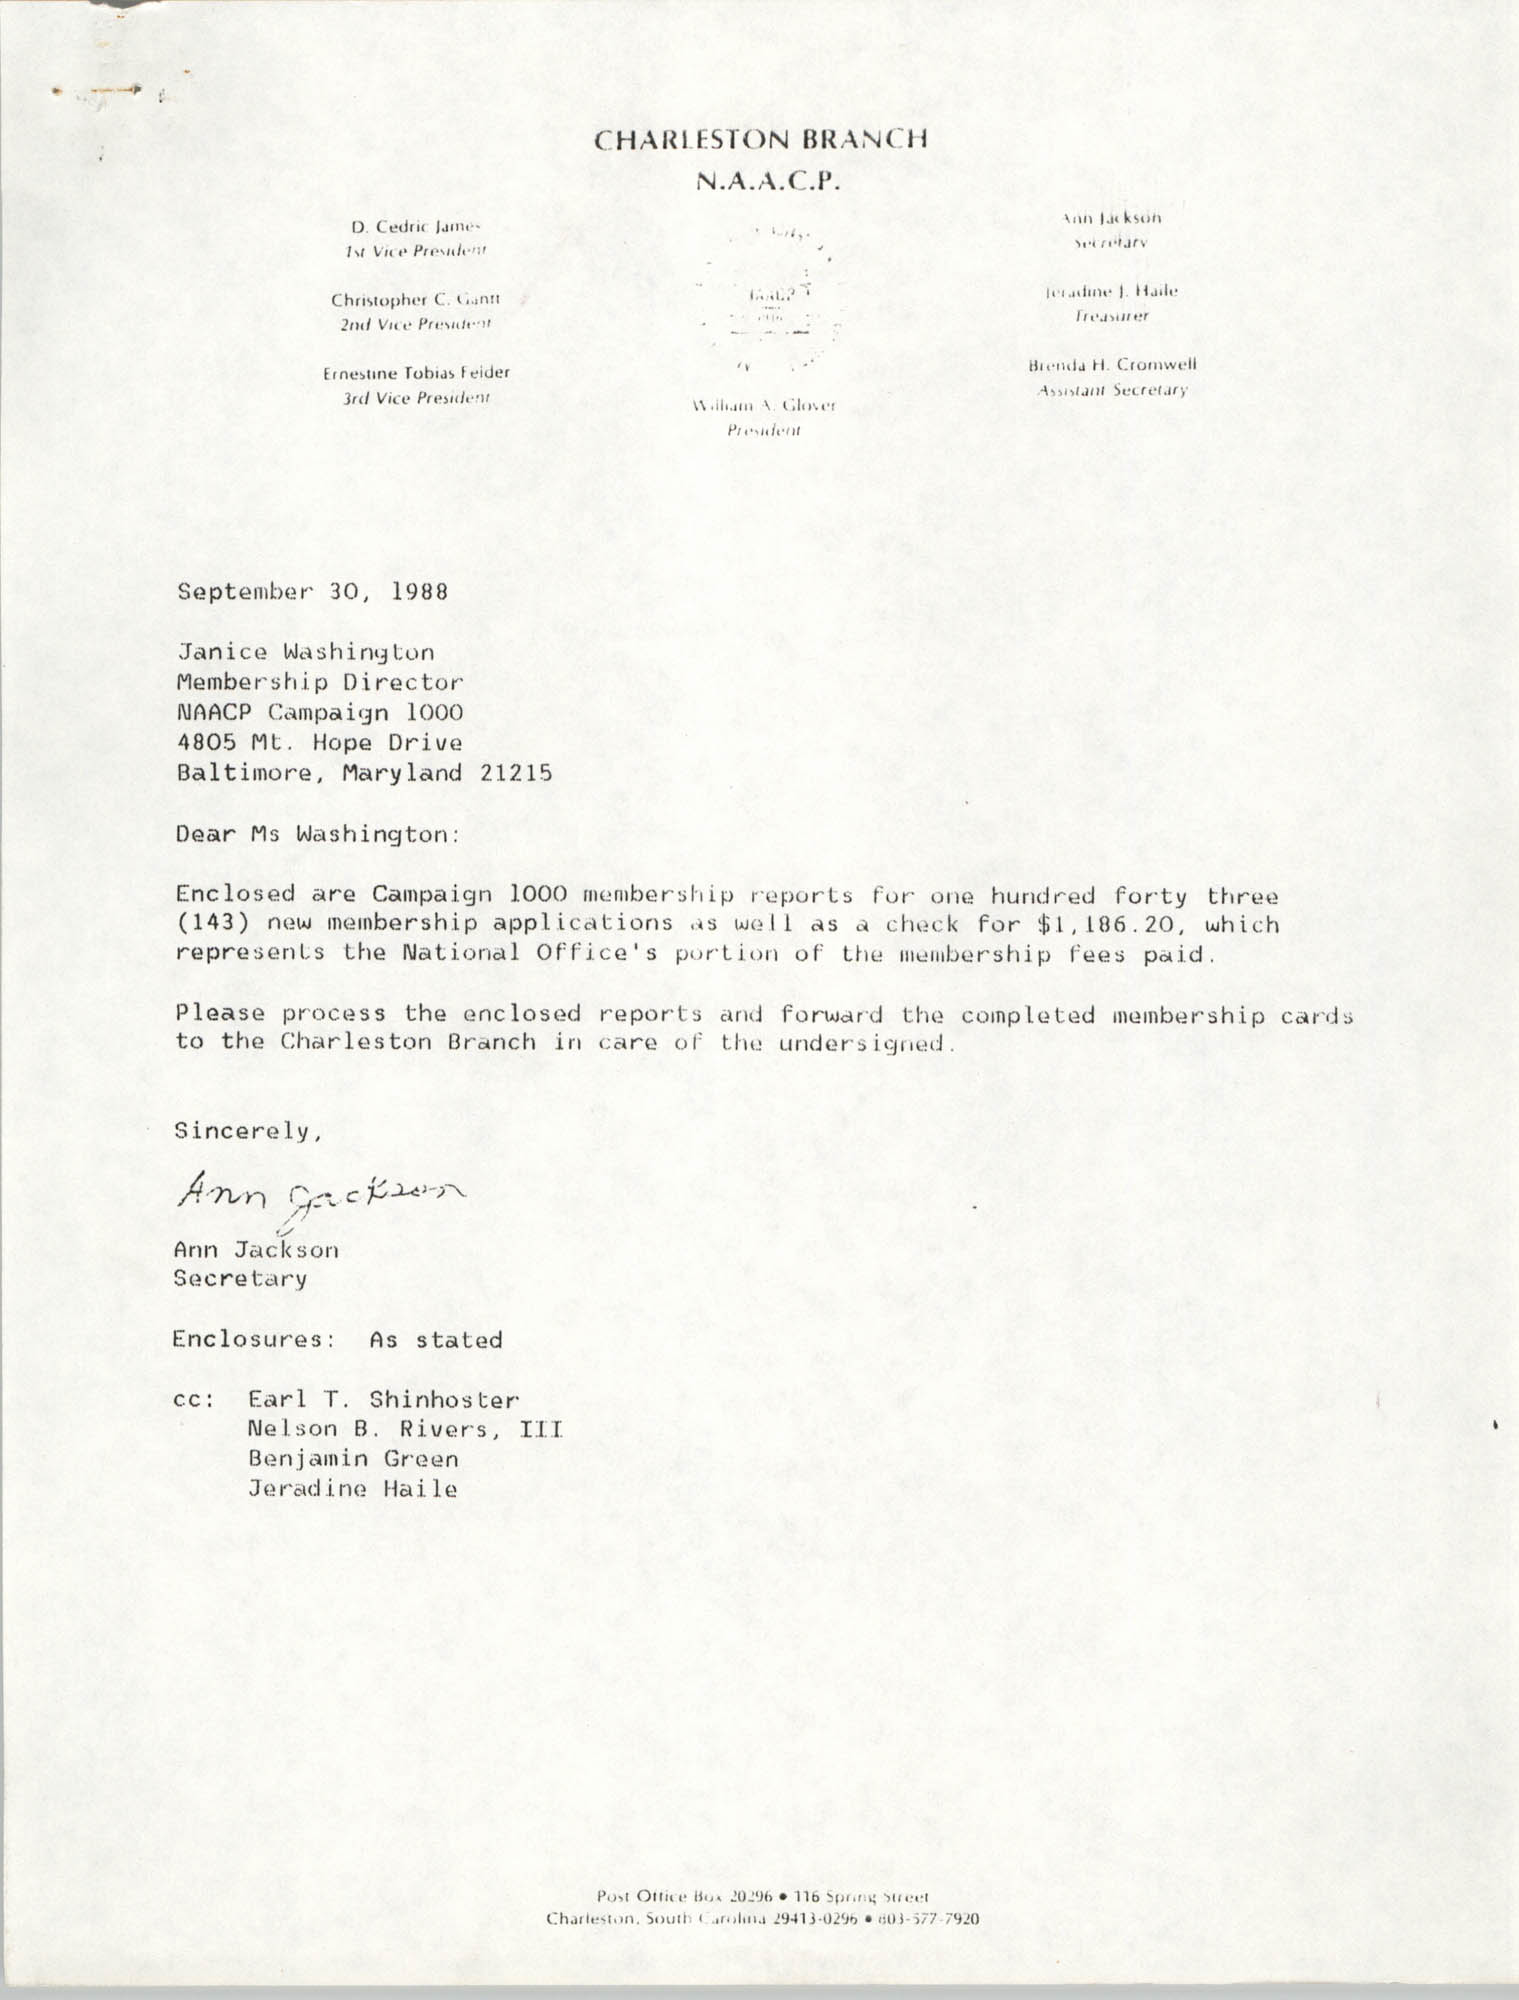 Letter from Ann Jackson to Janice Washington, NAACP, September 30, 1988